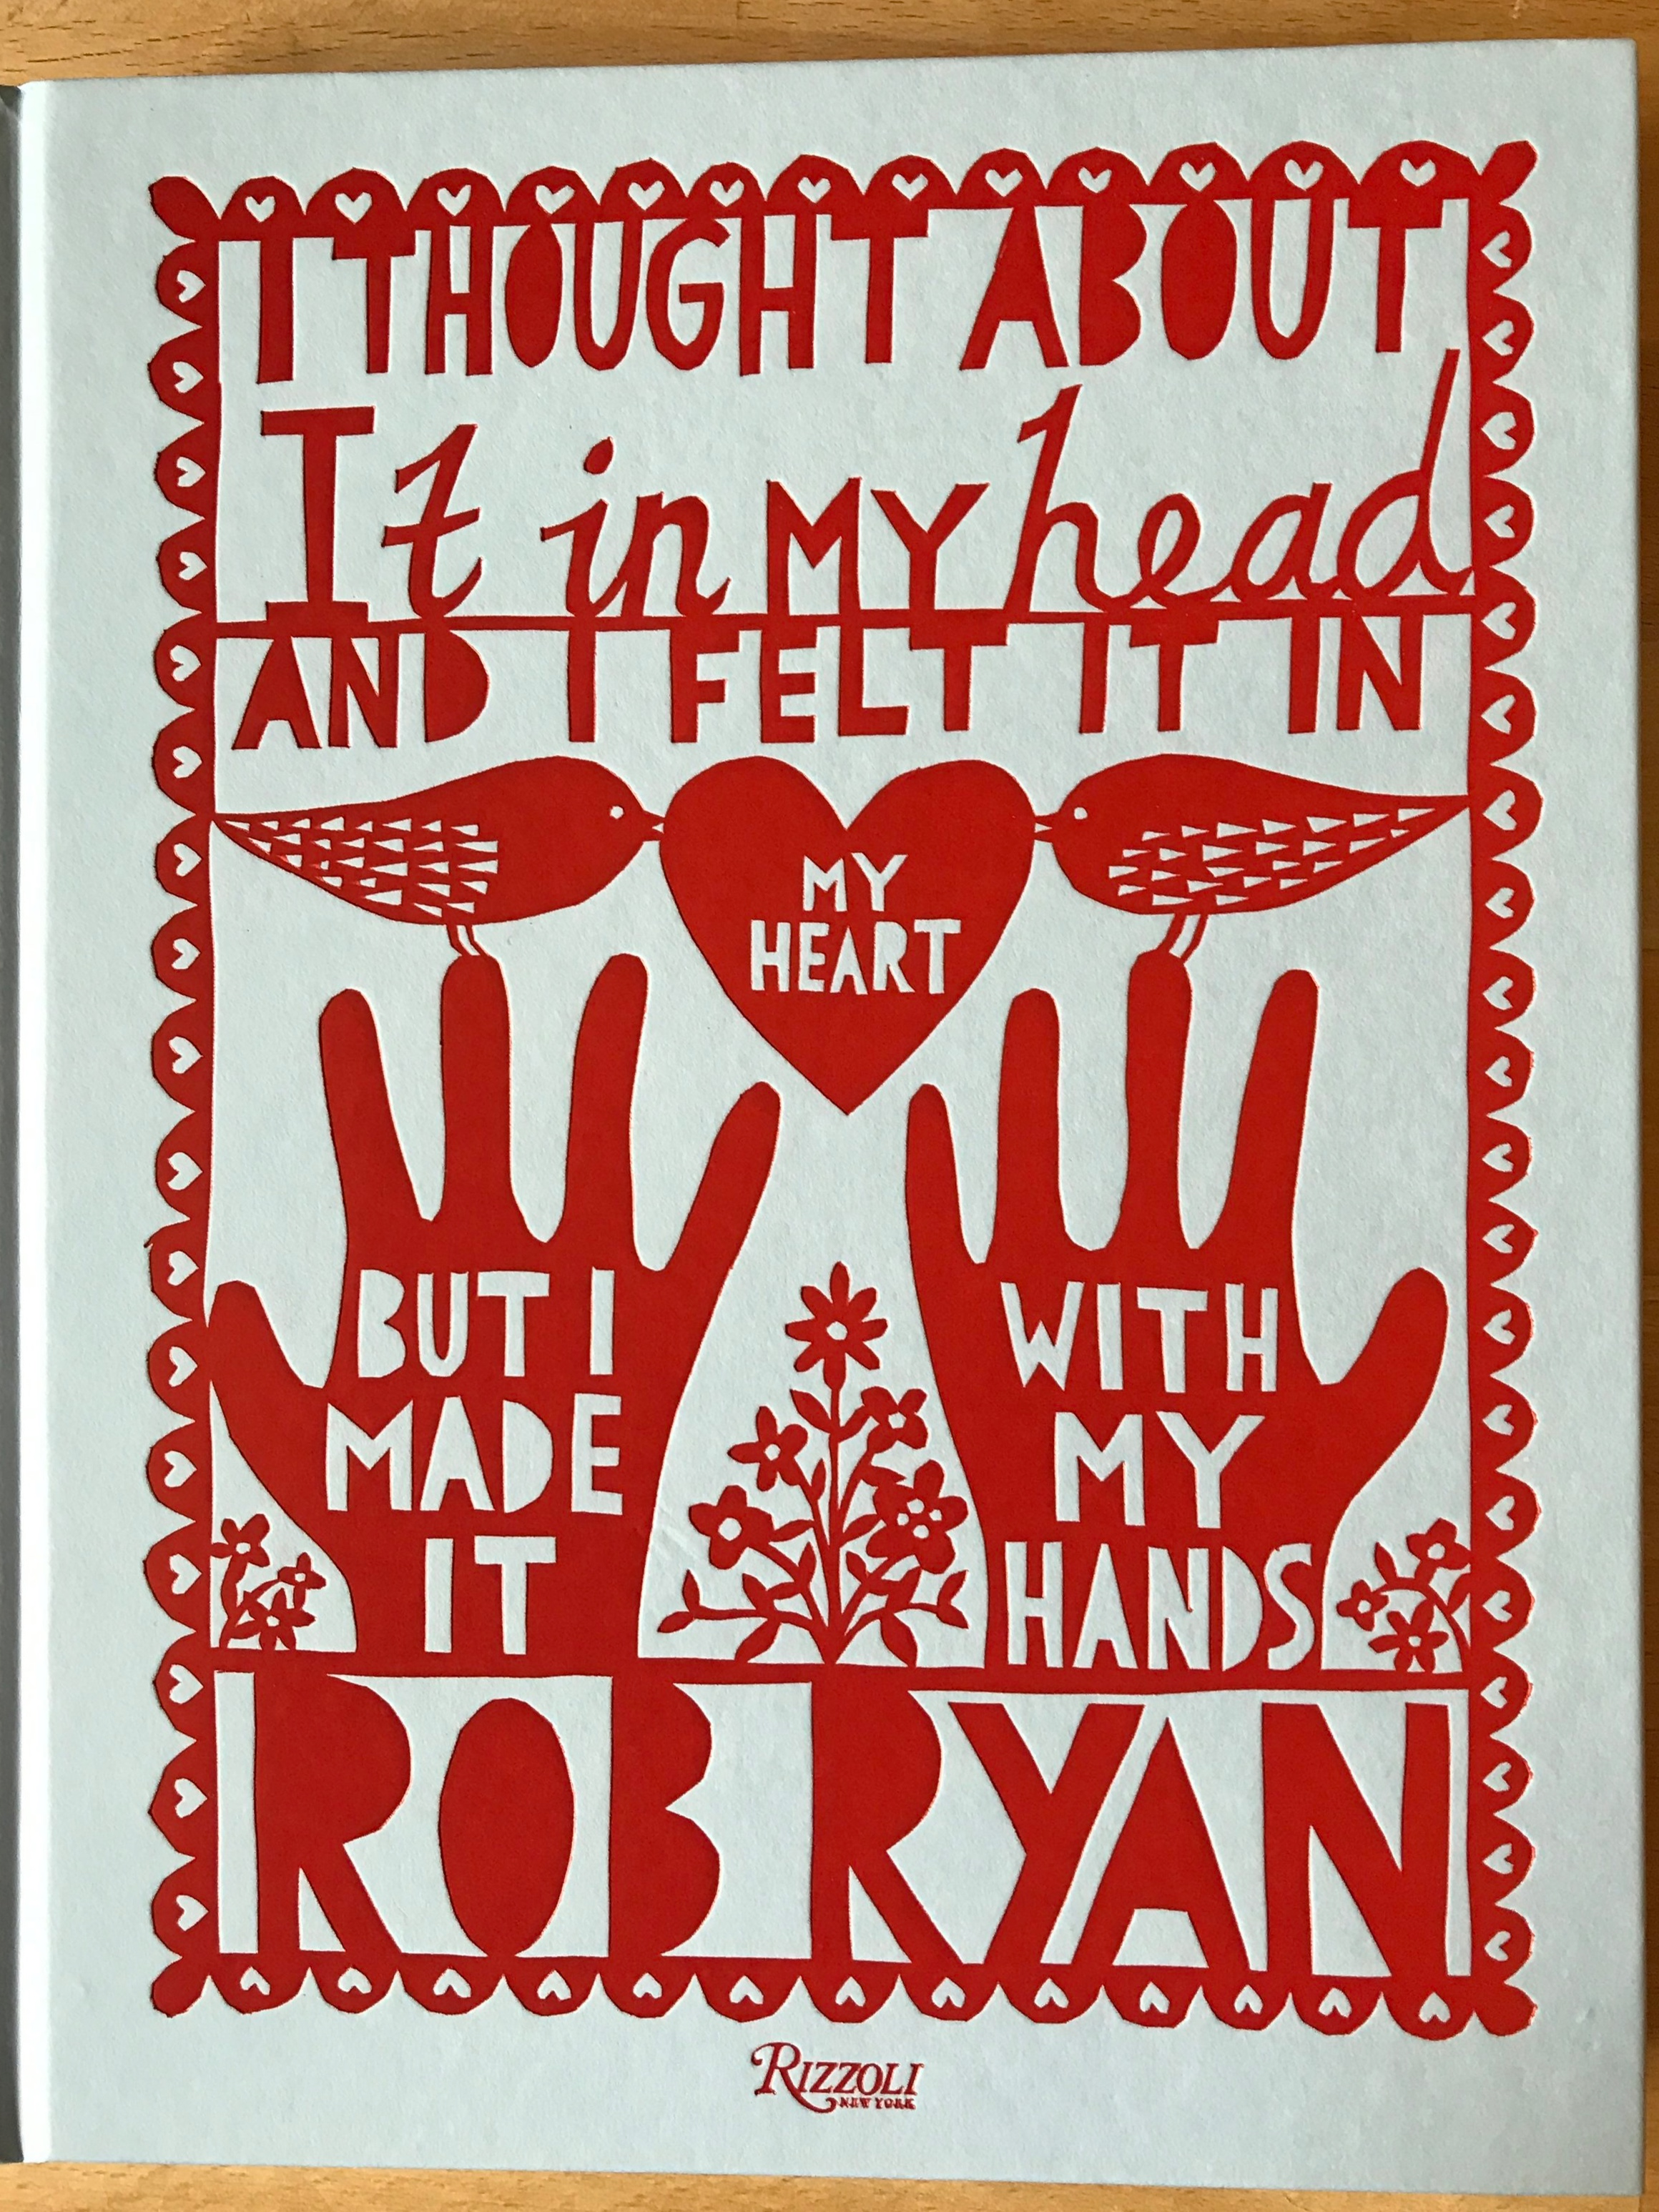 - Rob Ryan, I Thought About it in My Head and I Felt it in My Heart but I Made it with My Hands (New York: Rizzoli, 2018).